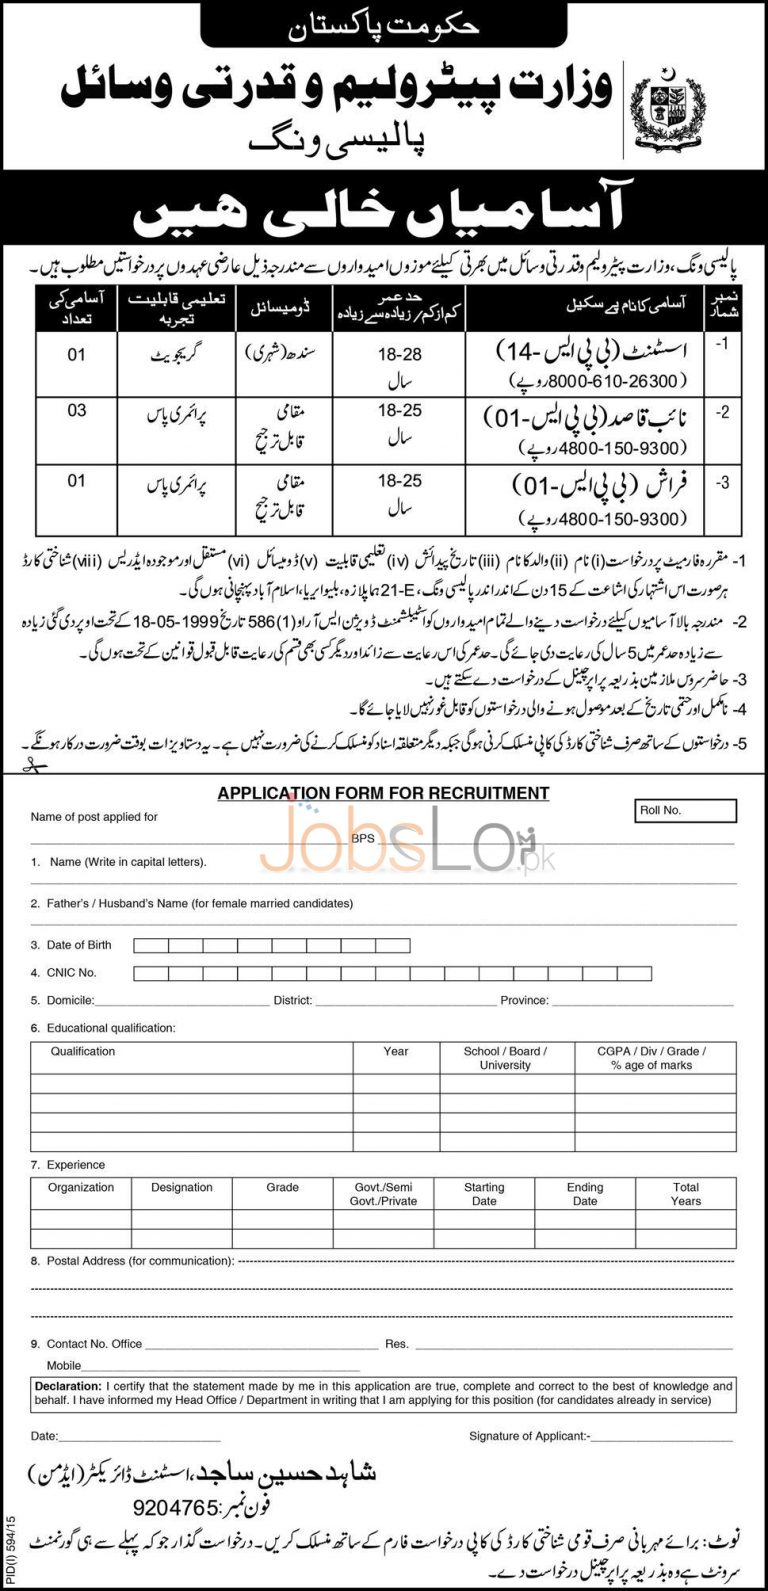 Ministry of Petroleum and Natural Resources Jobs 2015 Application Form